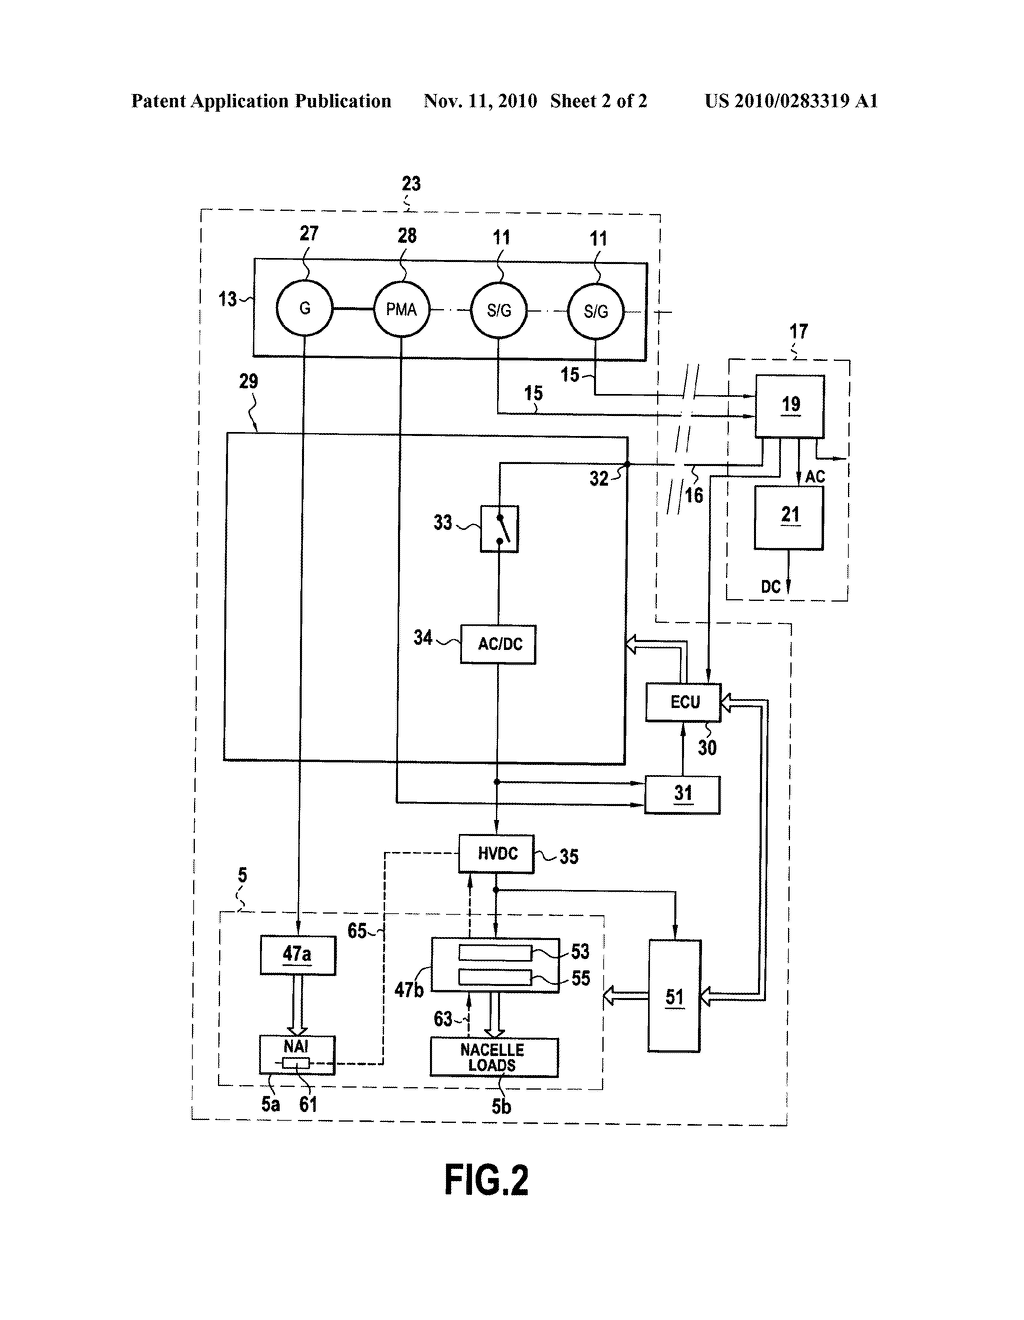 Electrical Power Supply Circuit In An Aircraft For Lectric Diagram Drawing Equipment Including A De Icing Schematic And Image 03